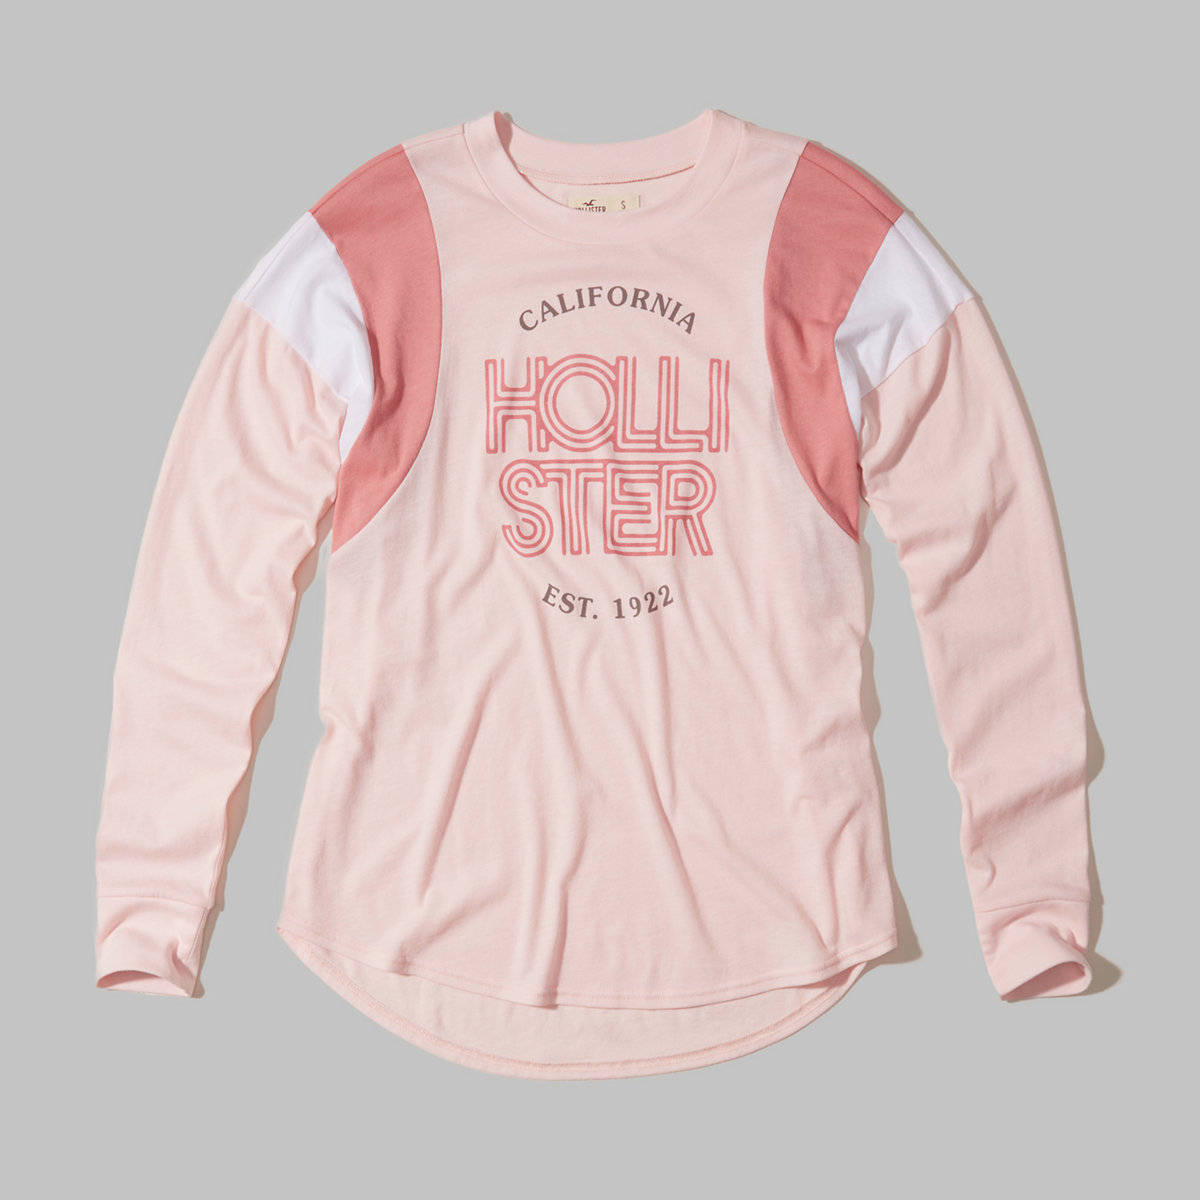 Hollister Cali Sport Colorblock Graphic Tee